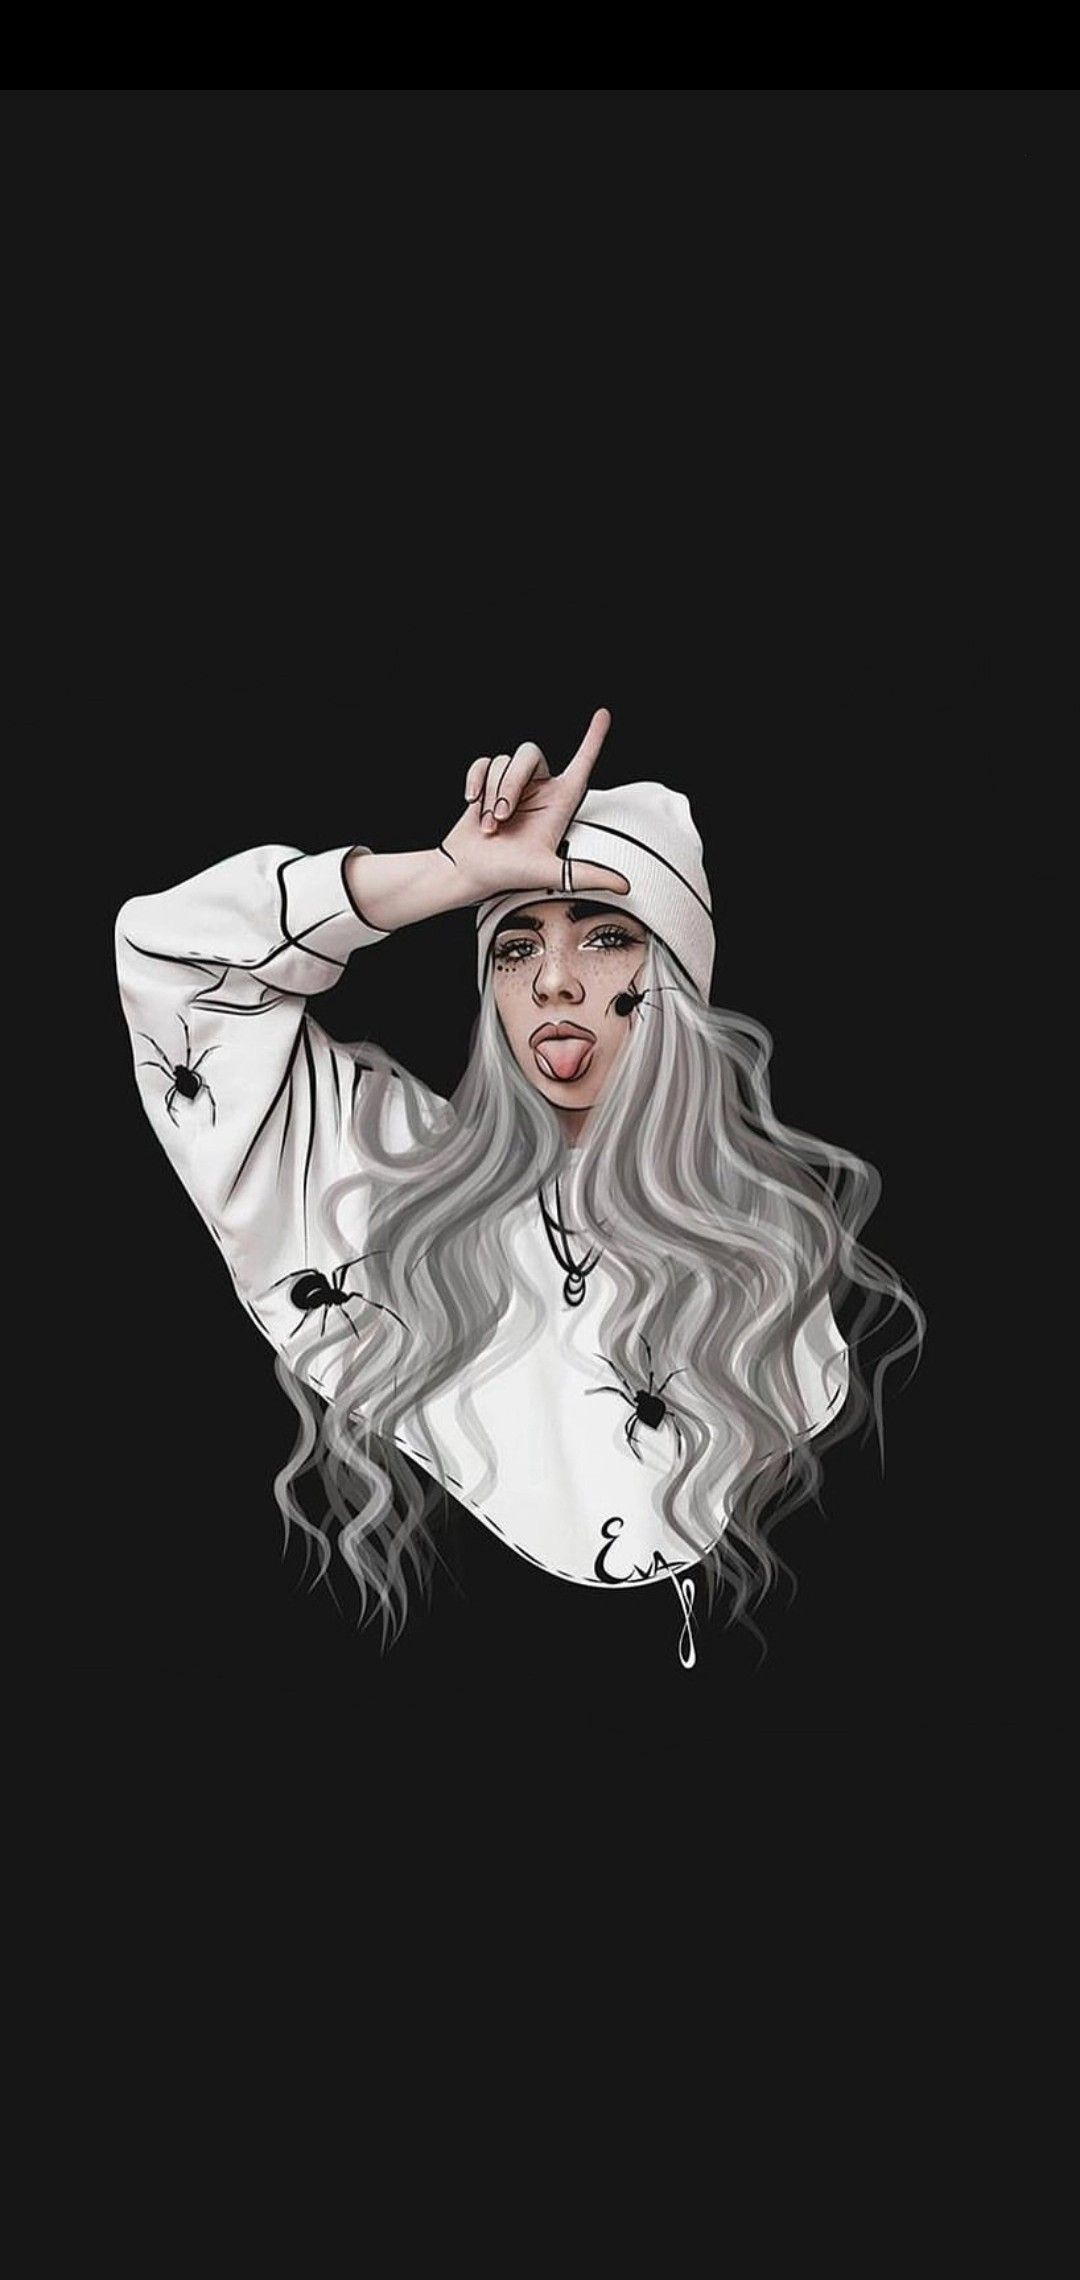 55 Billie Eilish Wallpapers Download At Wallpaperbro Billie Billie Eilish Cute Wallpapers